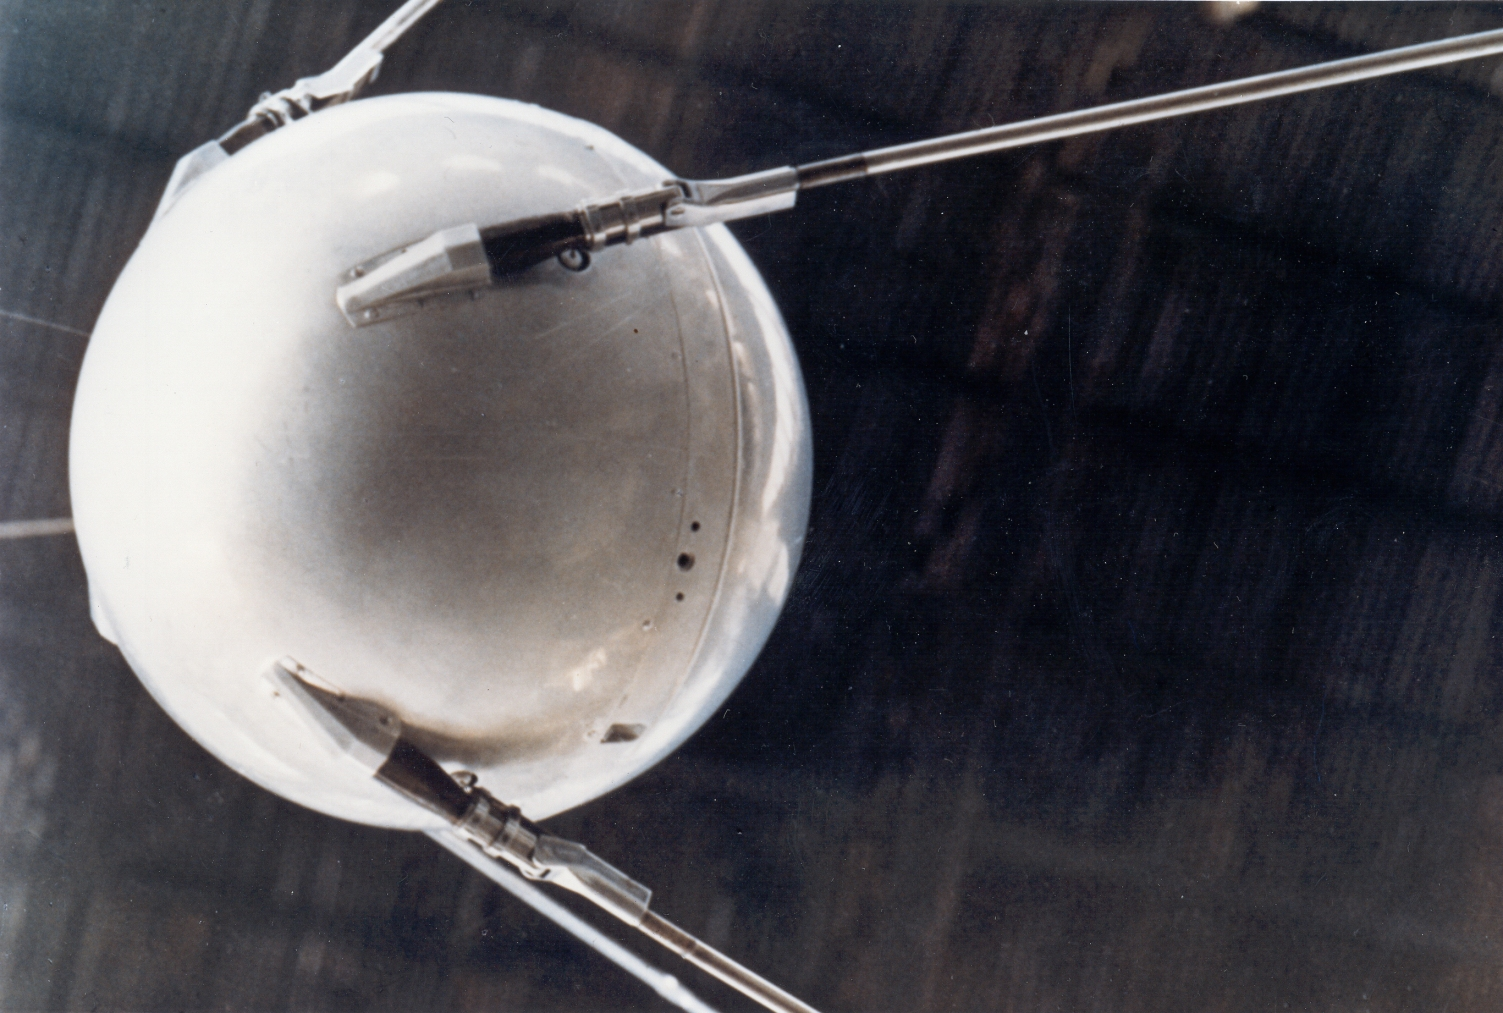 How Sputnik Changed the World 55 Years Ago Today